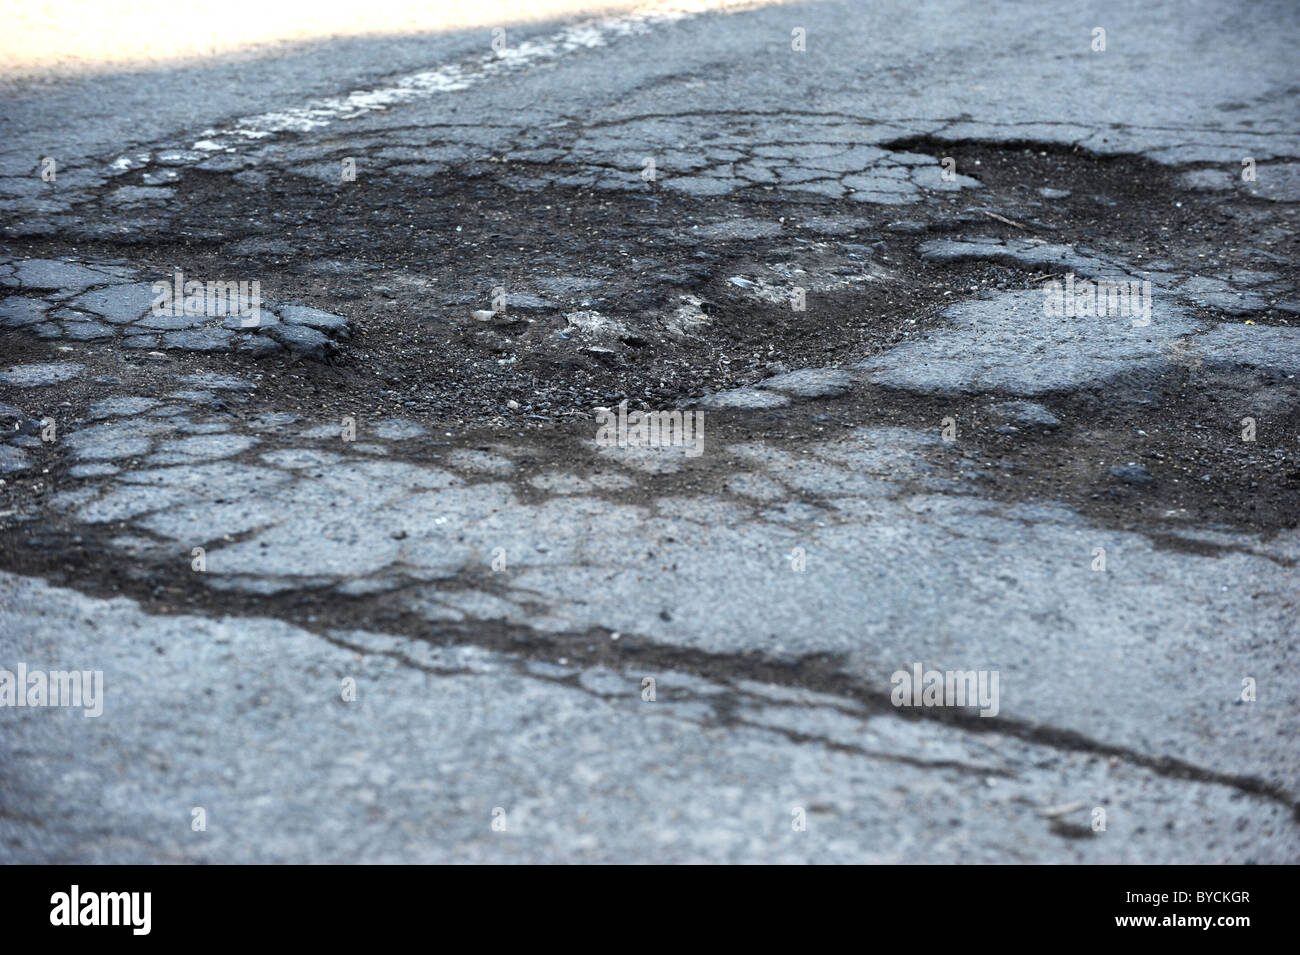 Deep potholes in a busy road caused by the recent snow and freezing weather - Stock Image